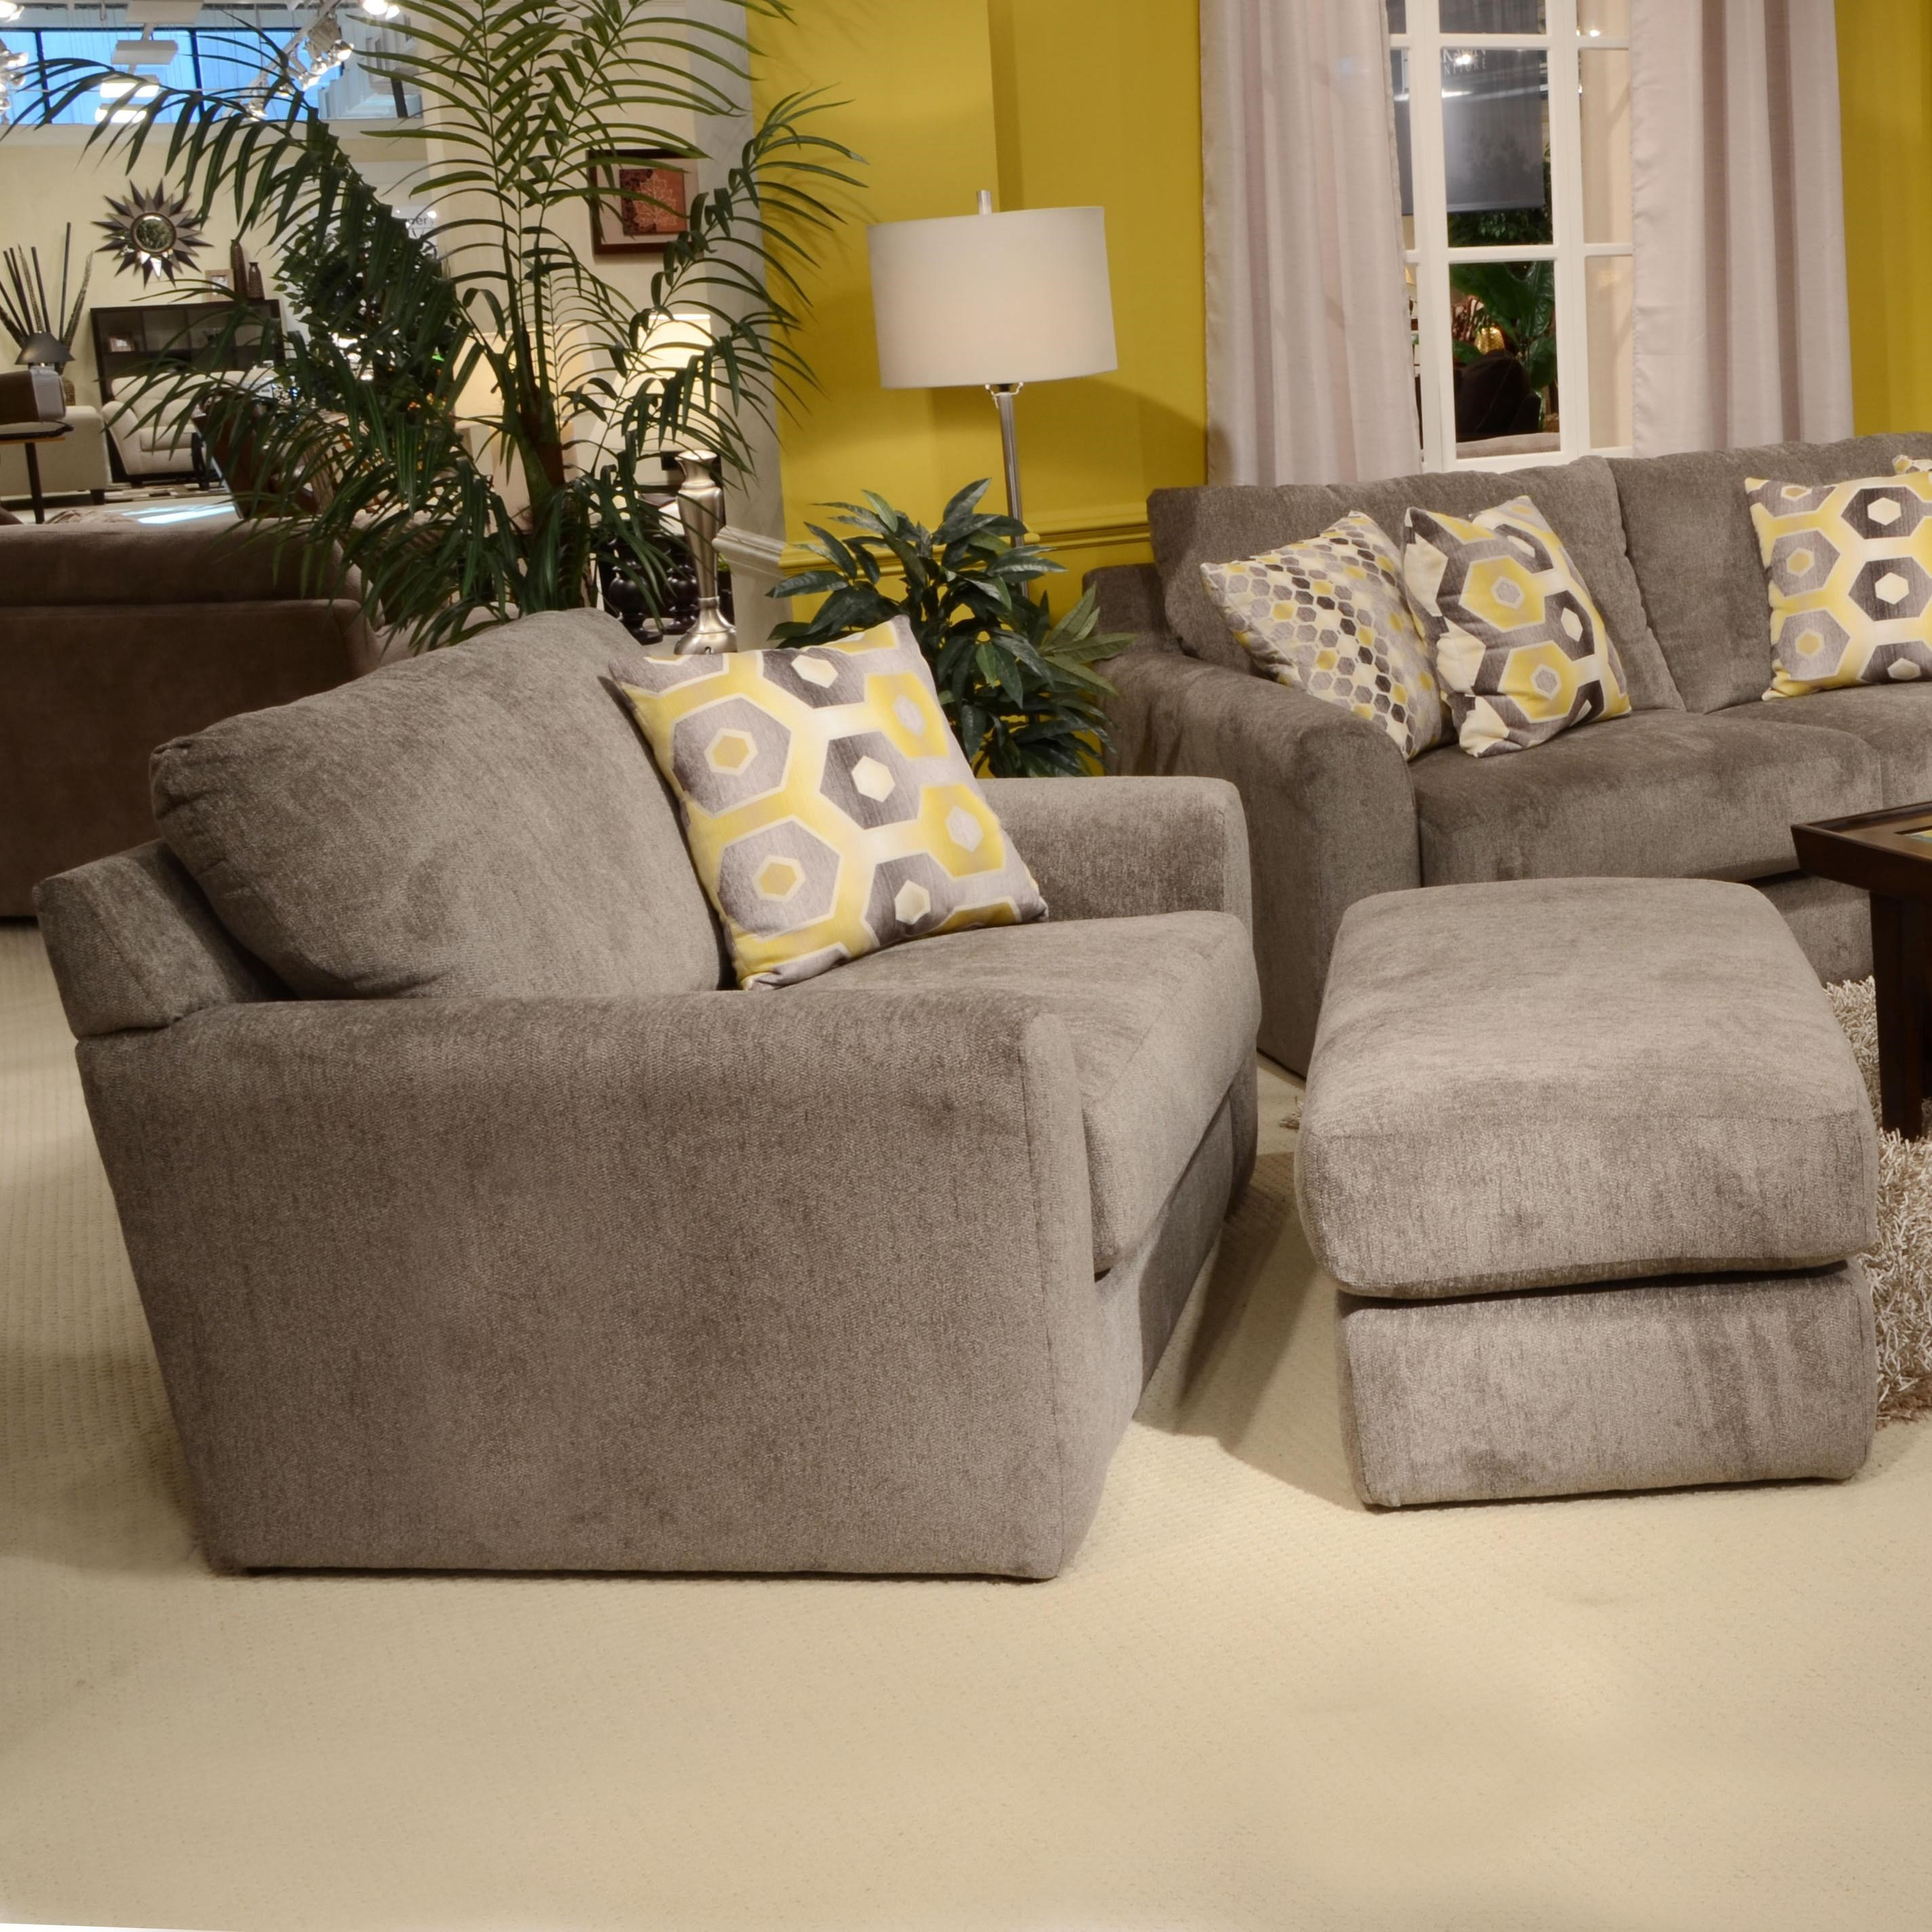 Incroyable Jackson Furniture Sutton Chair And A Half And Ottoman With Casual Style